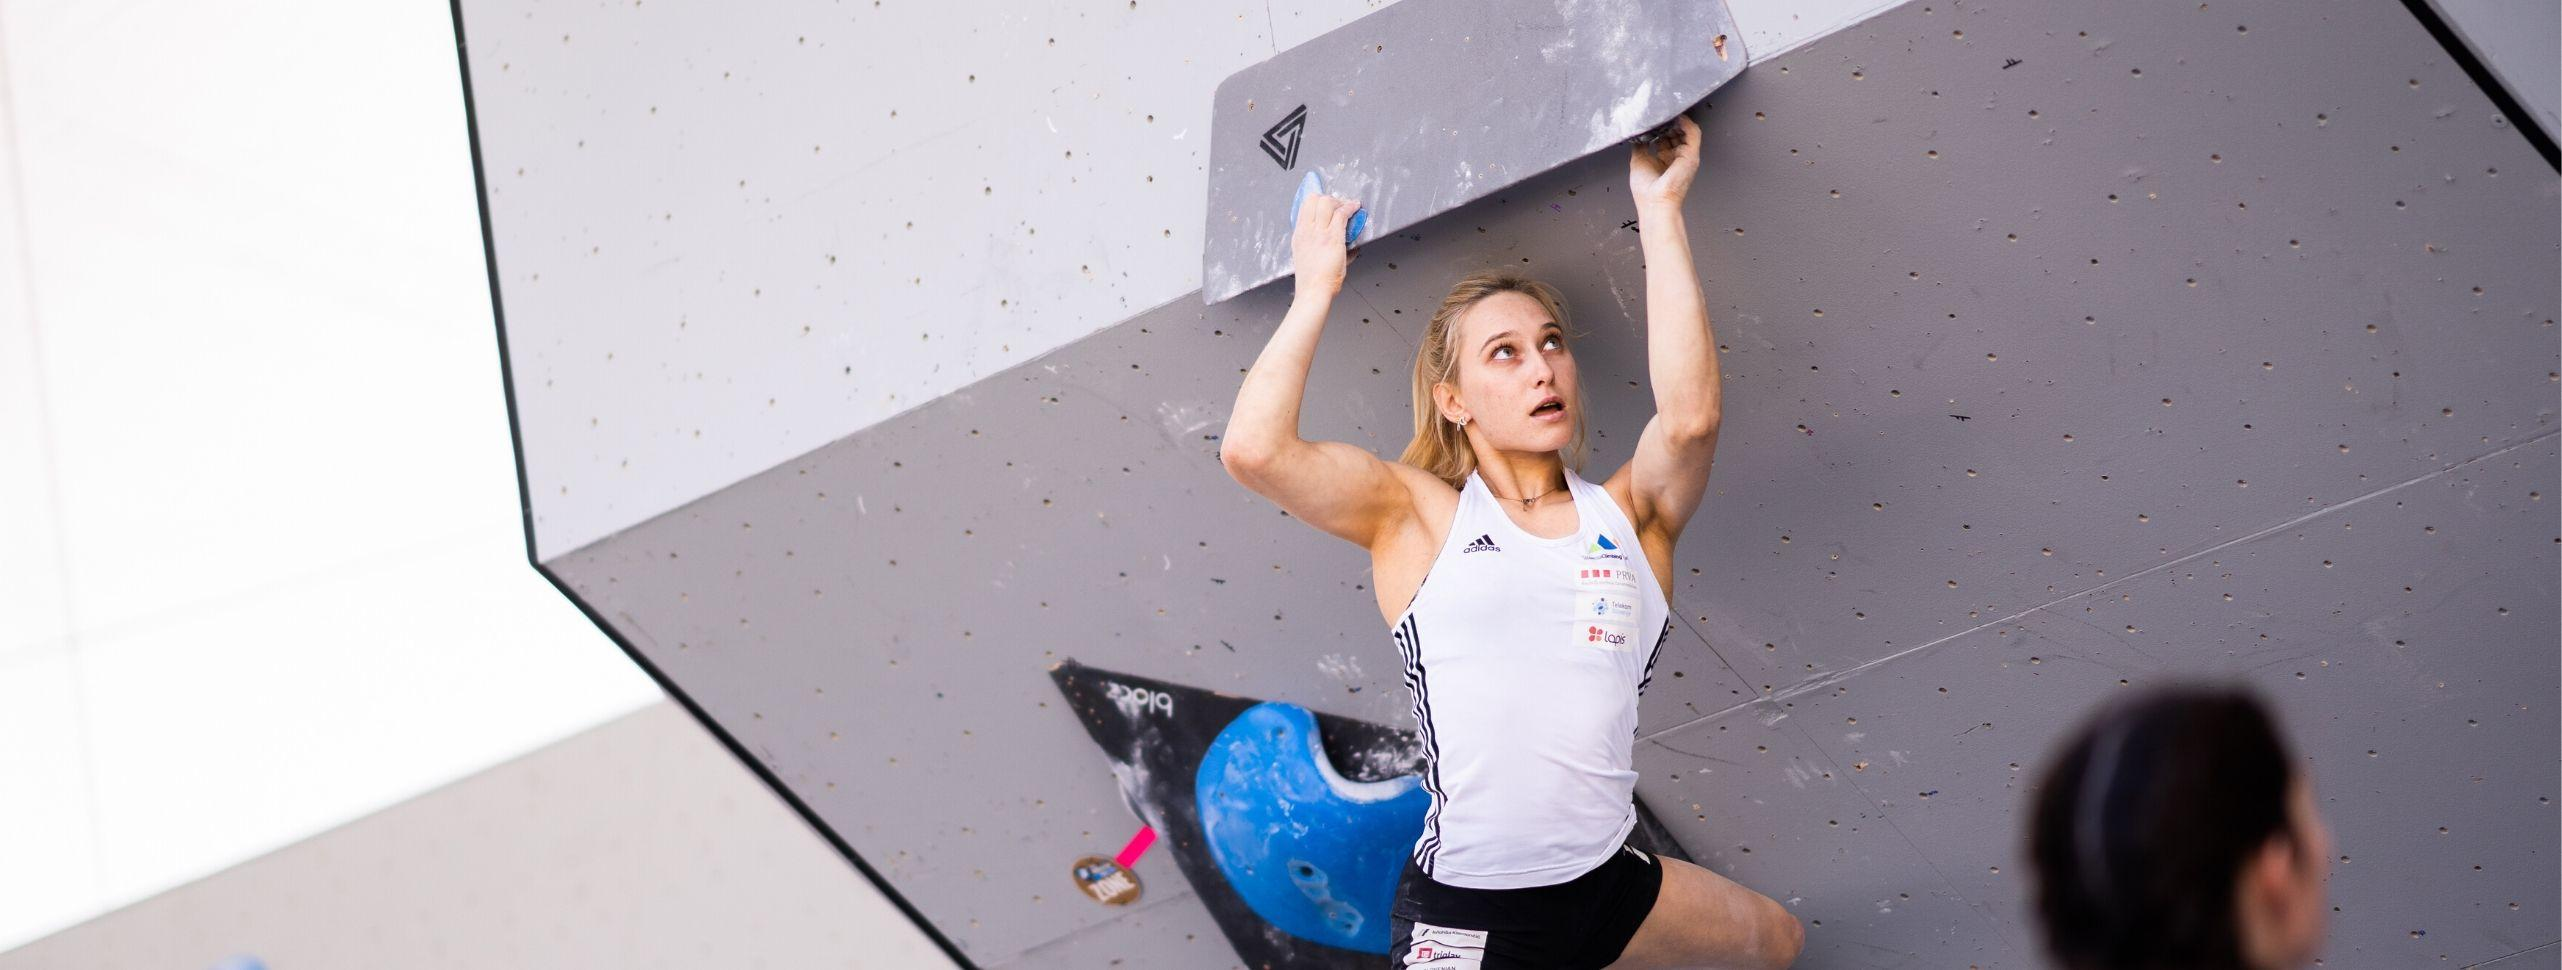 Sport Climbing's Janja Garnbret Nominated as a Forbes 30 Under 30 for Europe